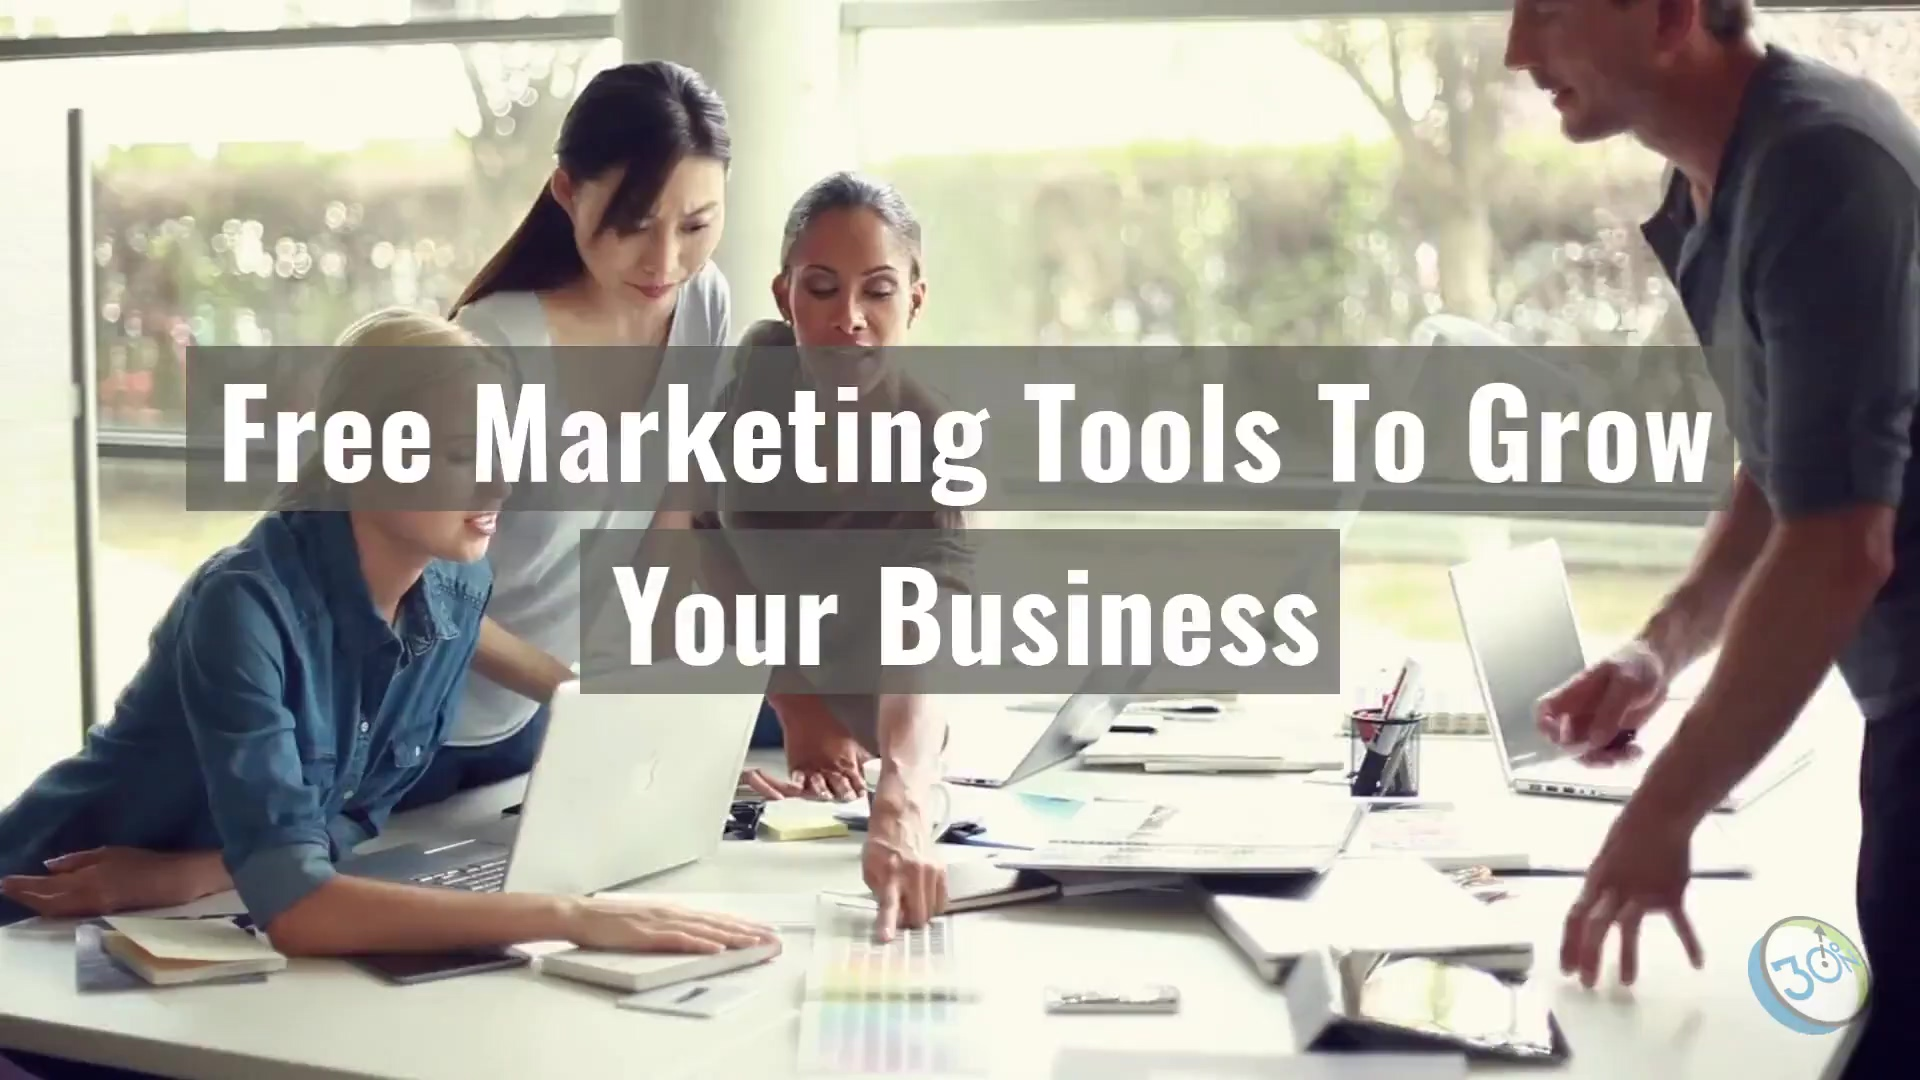 Free_Marketing_Tools_To_Grow_Your_Busine (1)